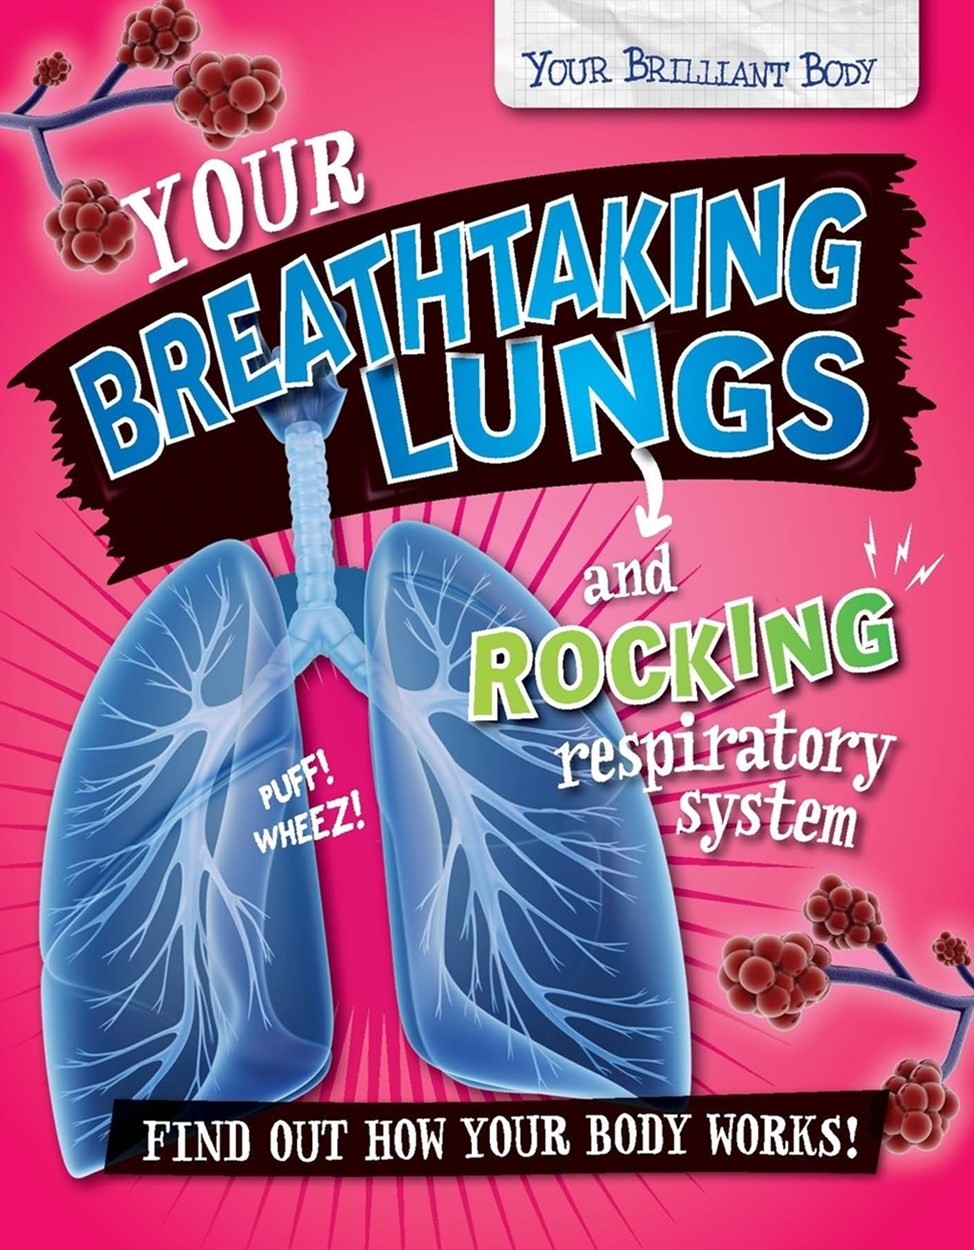 Your Brilliant Body: Your Breathtaking Lungs and Rocking Respiratory System